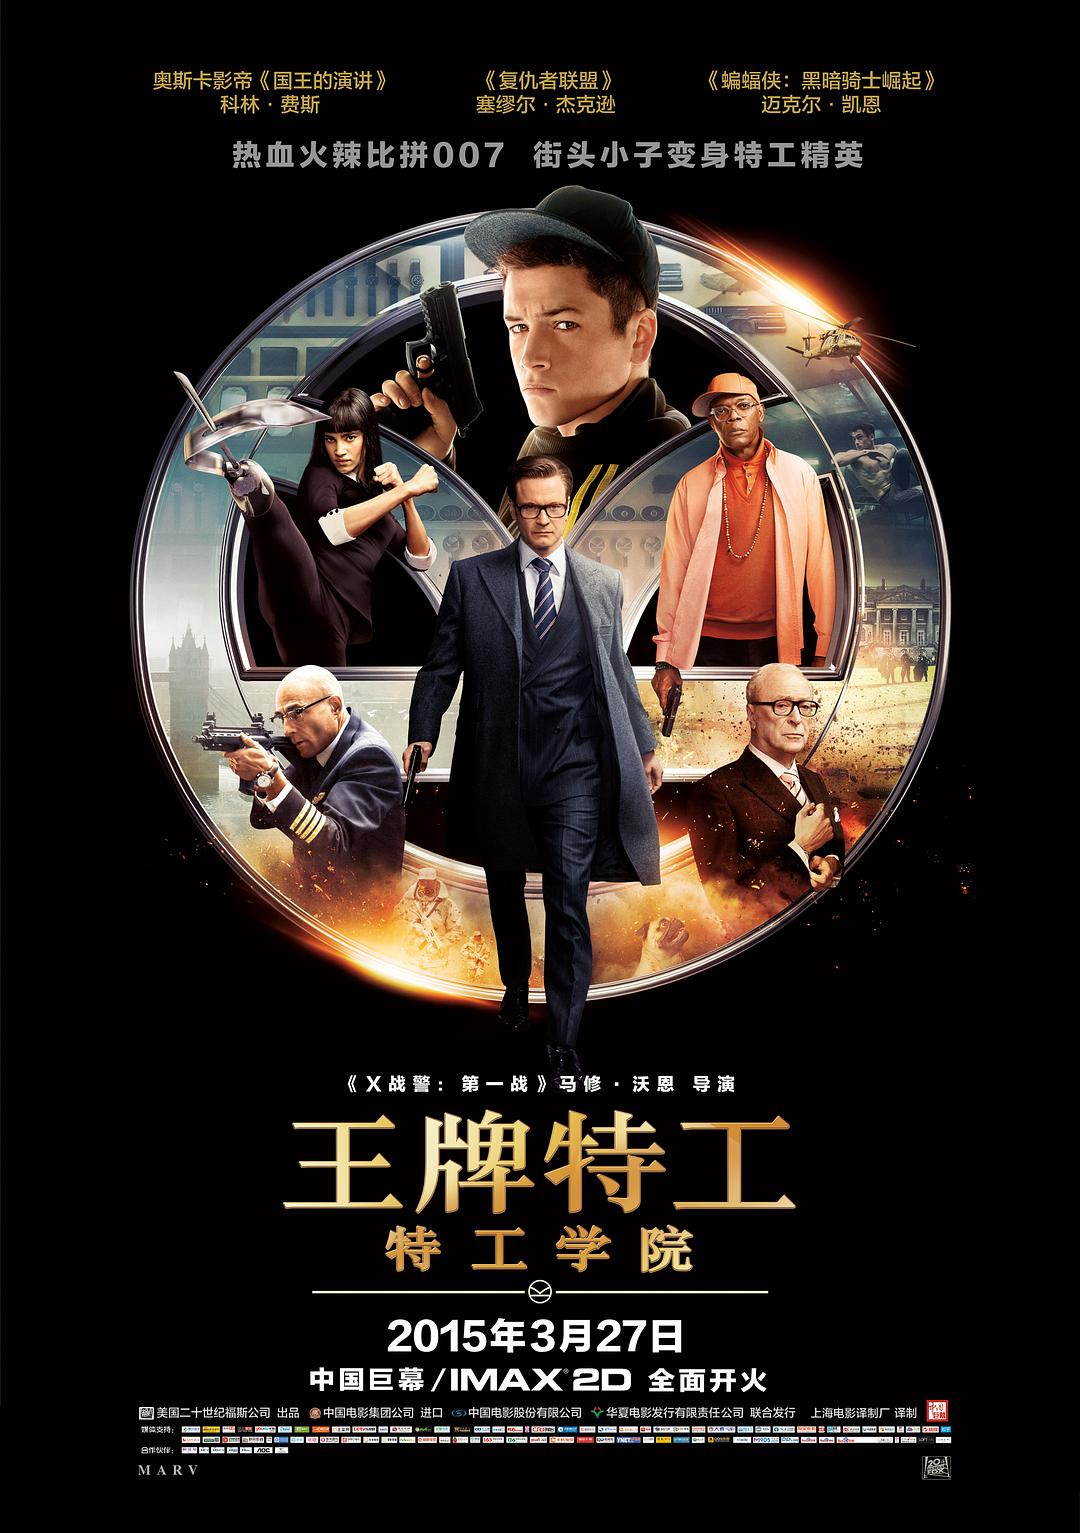 王牌特工:特工学院 Kingsman: The Secret Service